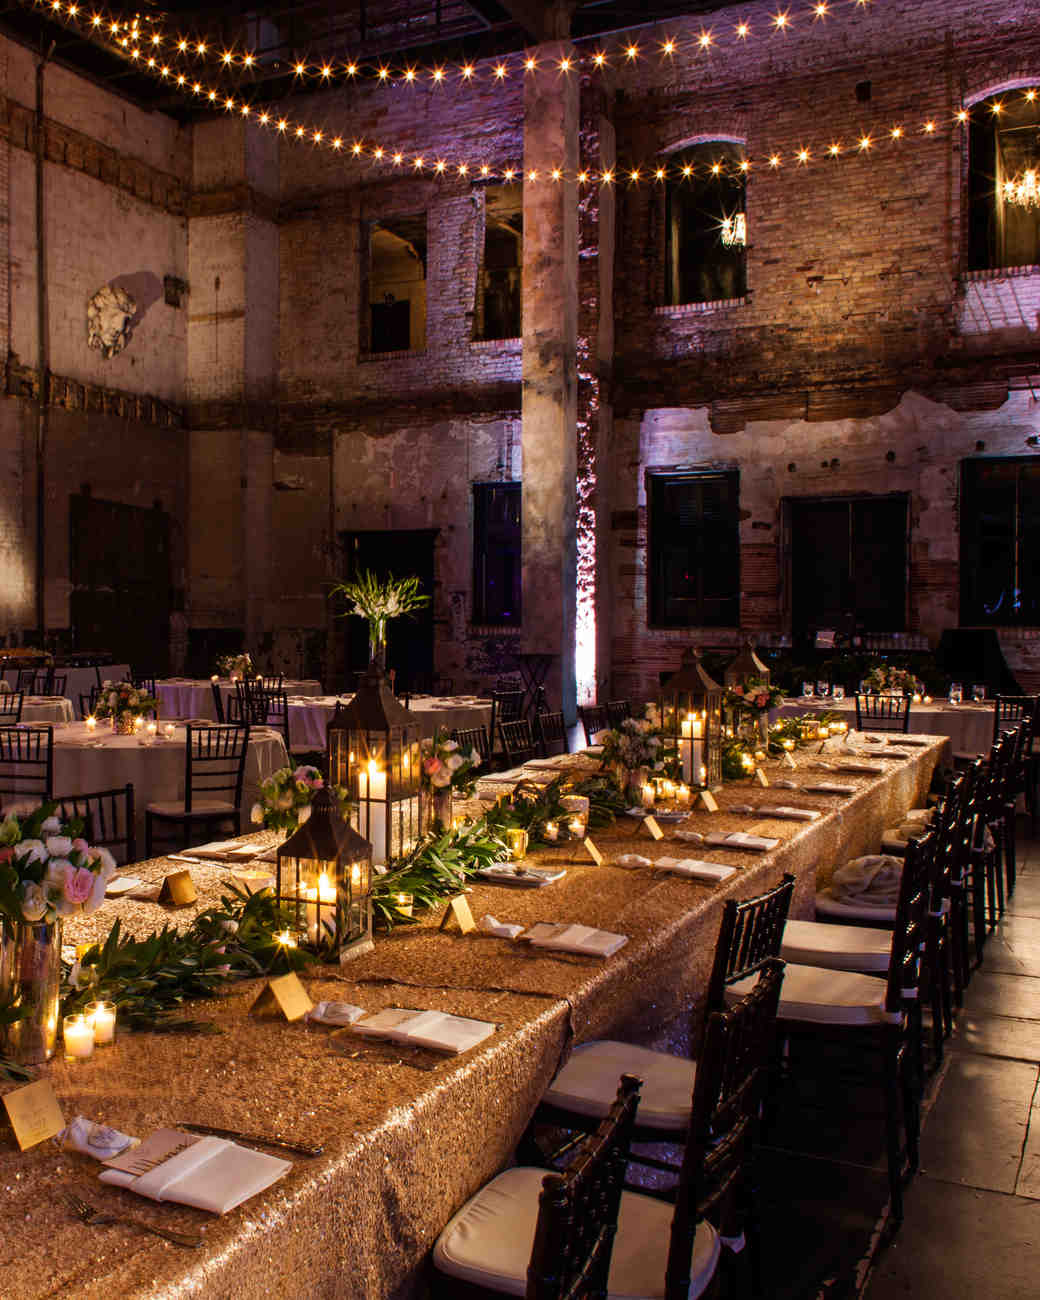 Restored warehouses where you can tie the knot martha stewart restored warehouses where you can tie the knot martha stewart weddings junglespirit